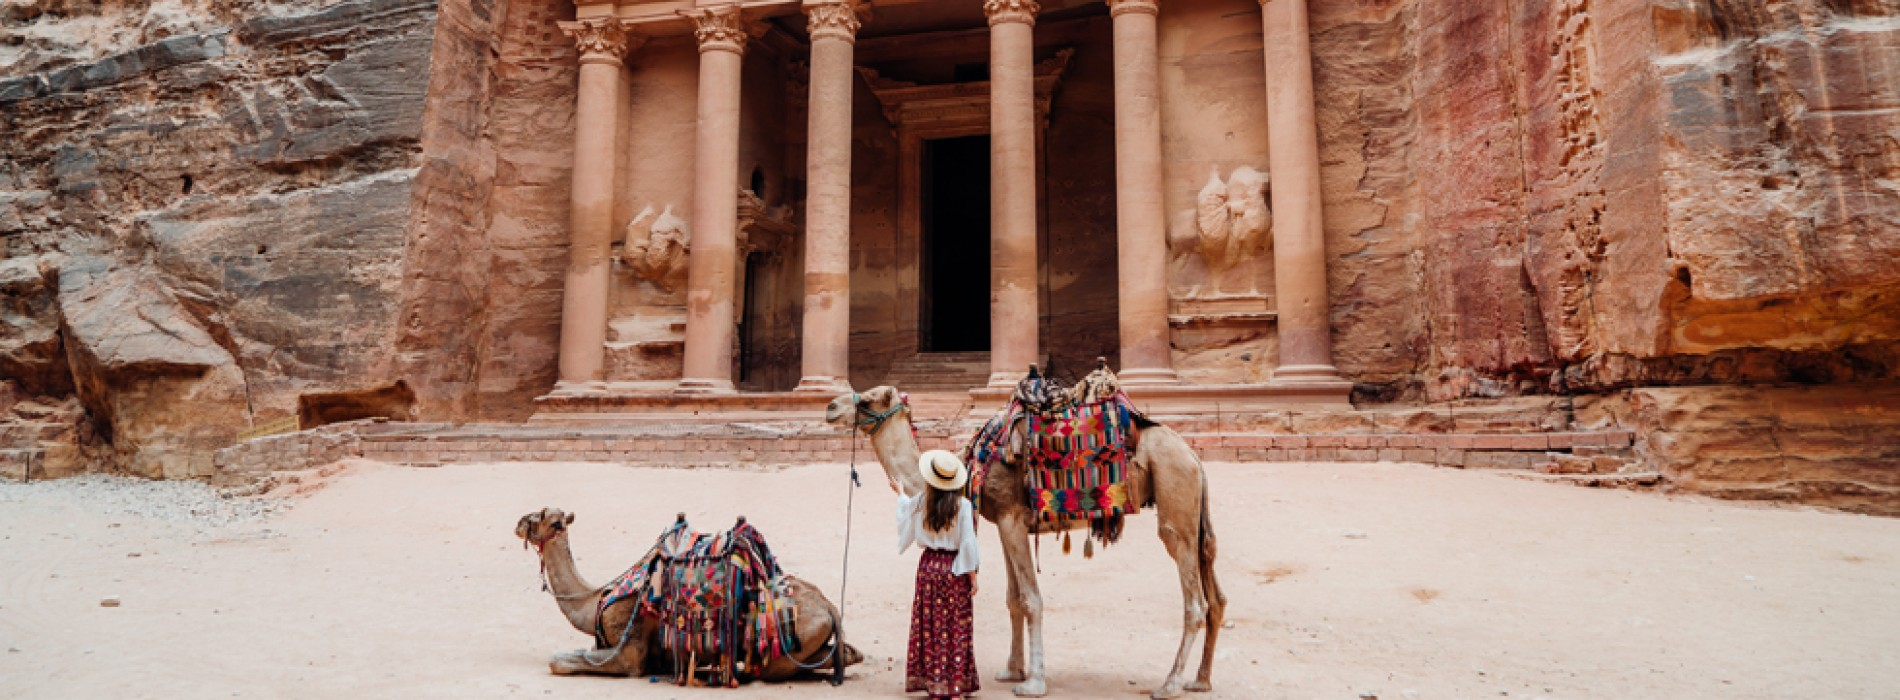 Jordan is and will remain one of the safest destinations to visit